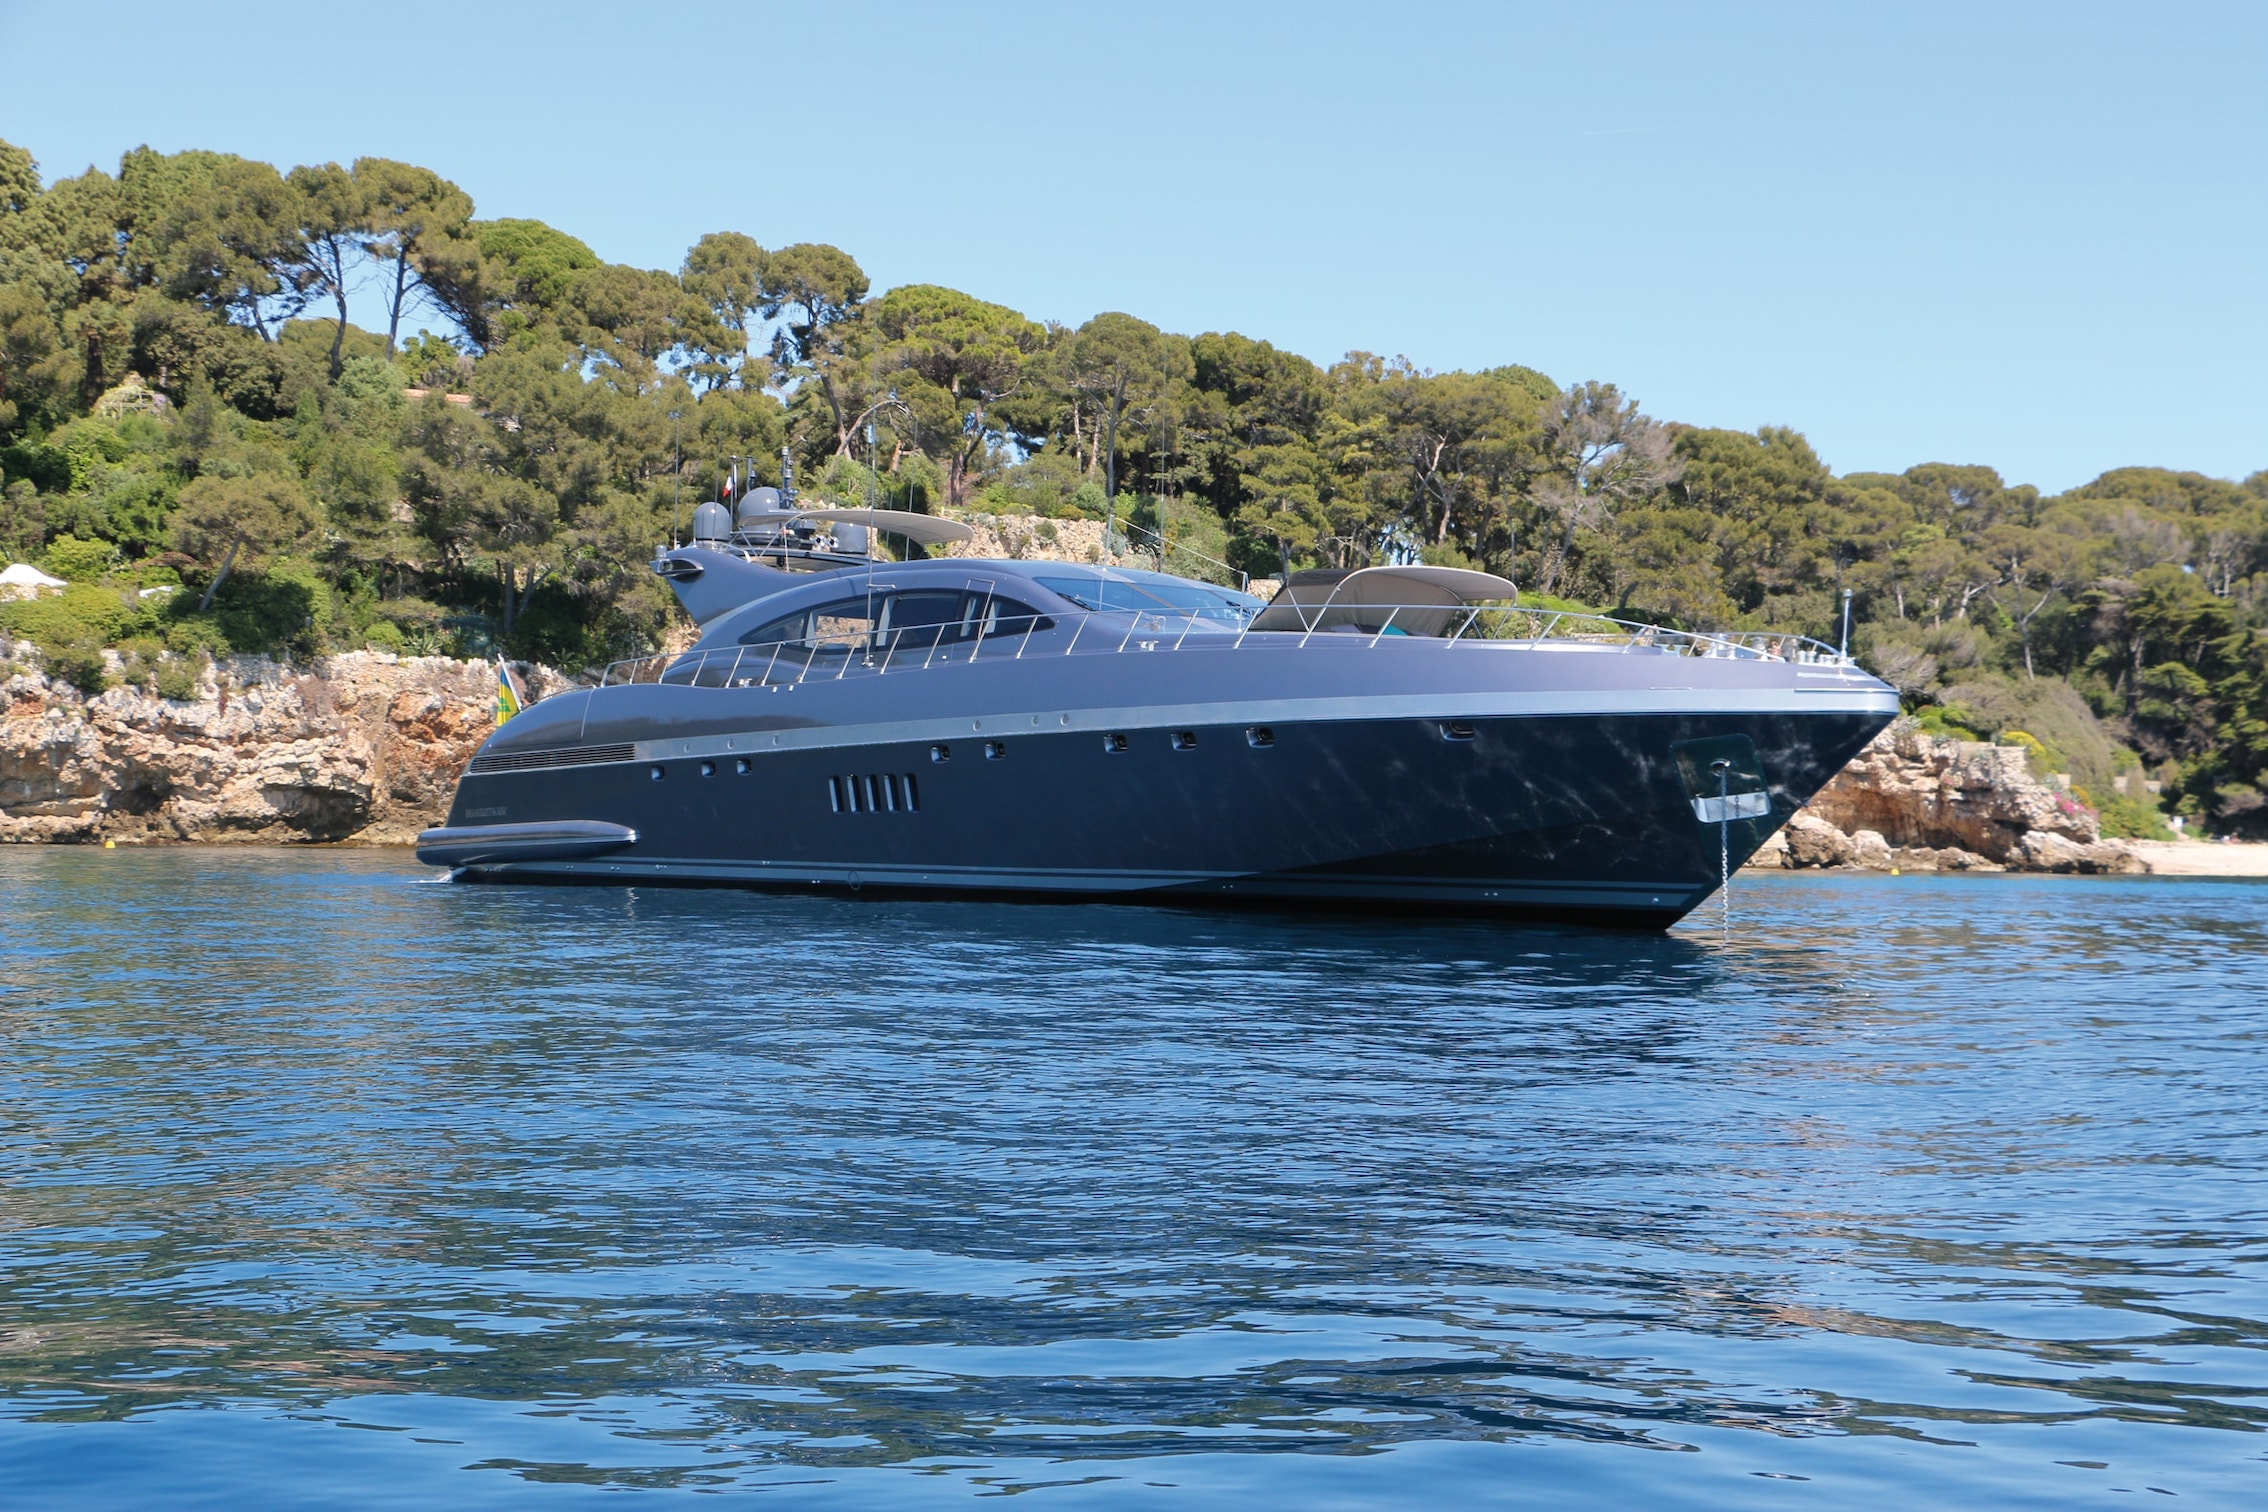 A top speed of 34 knots